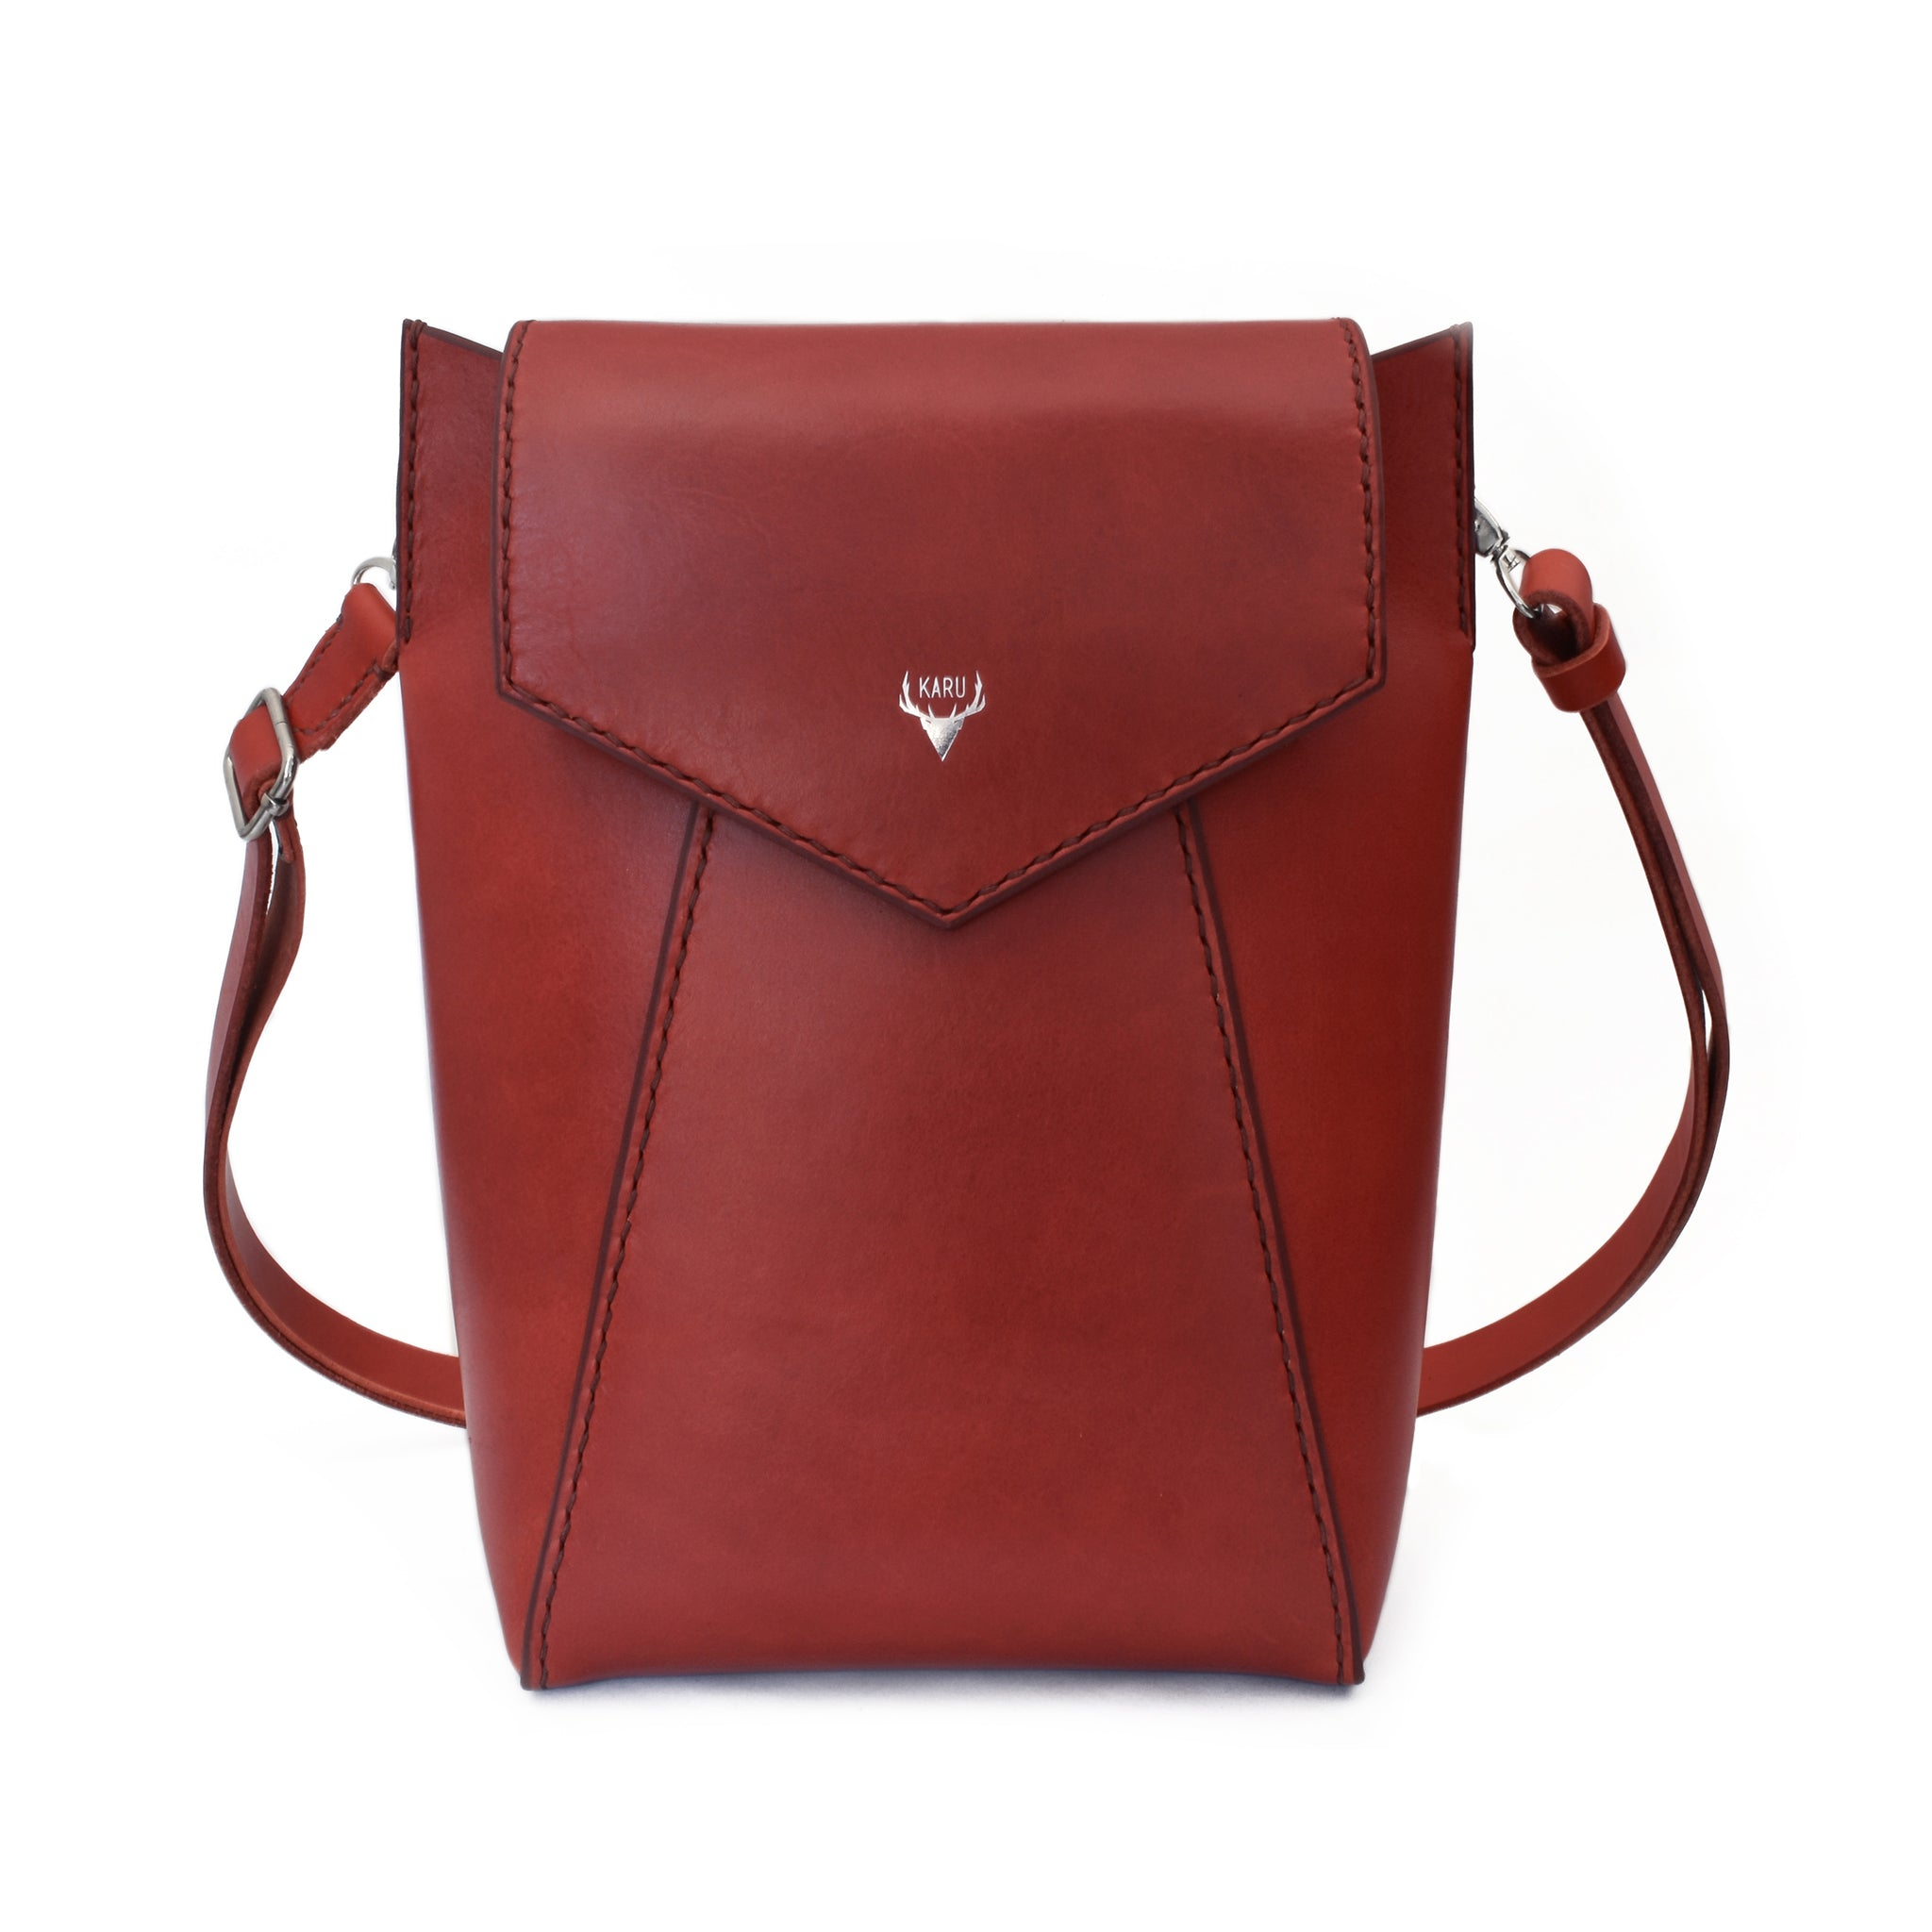 Kielo 3-in-1 Bag | Burgundy